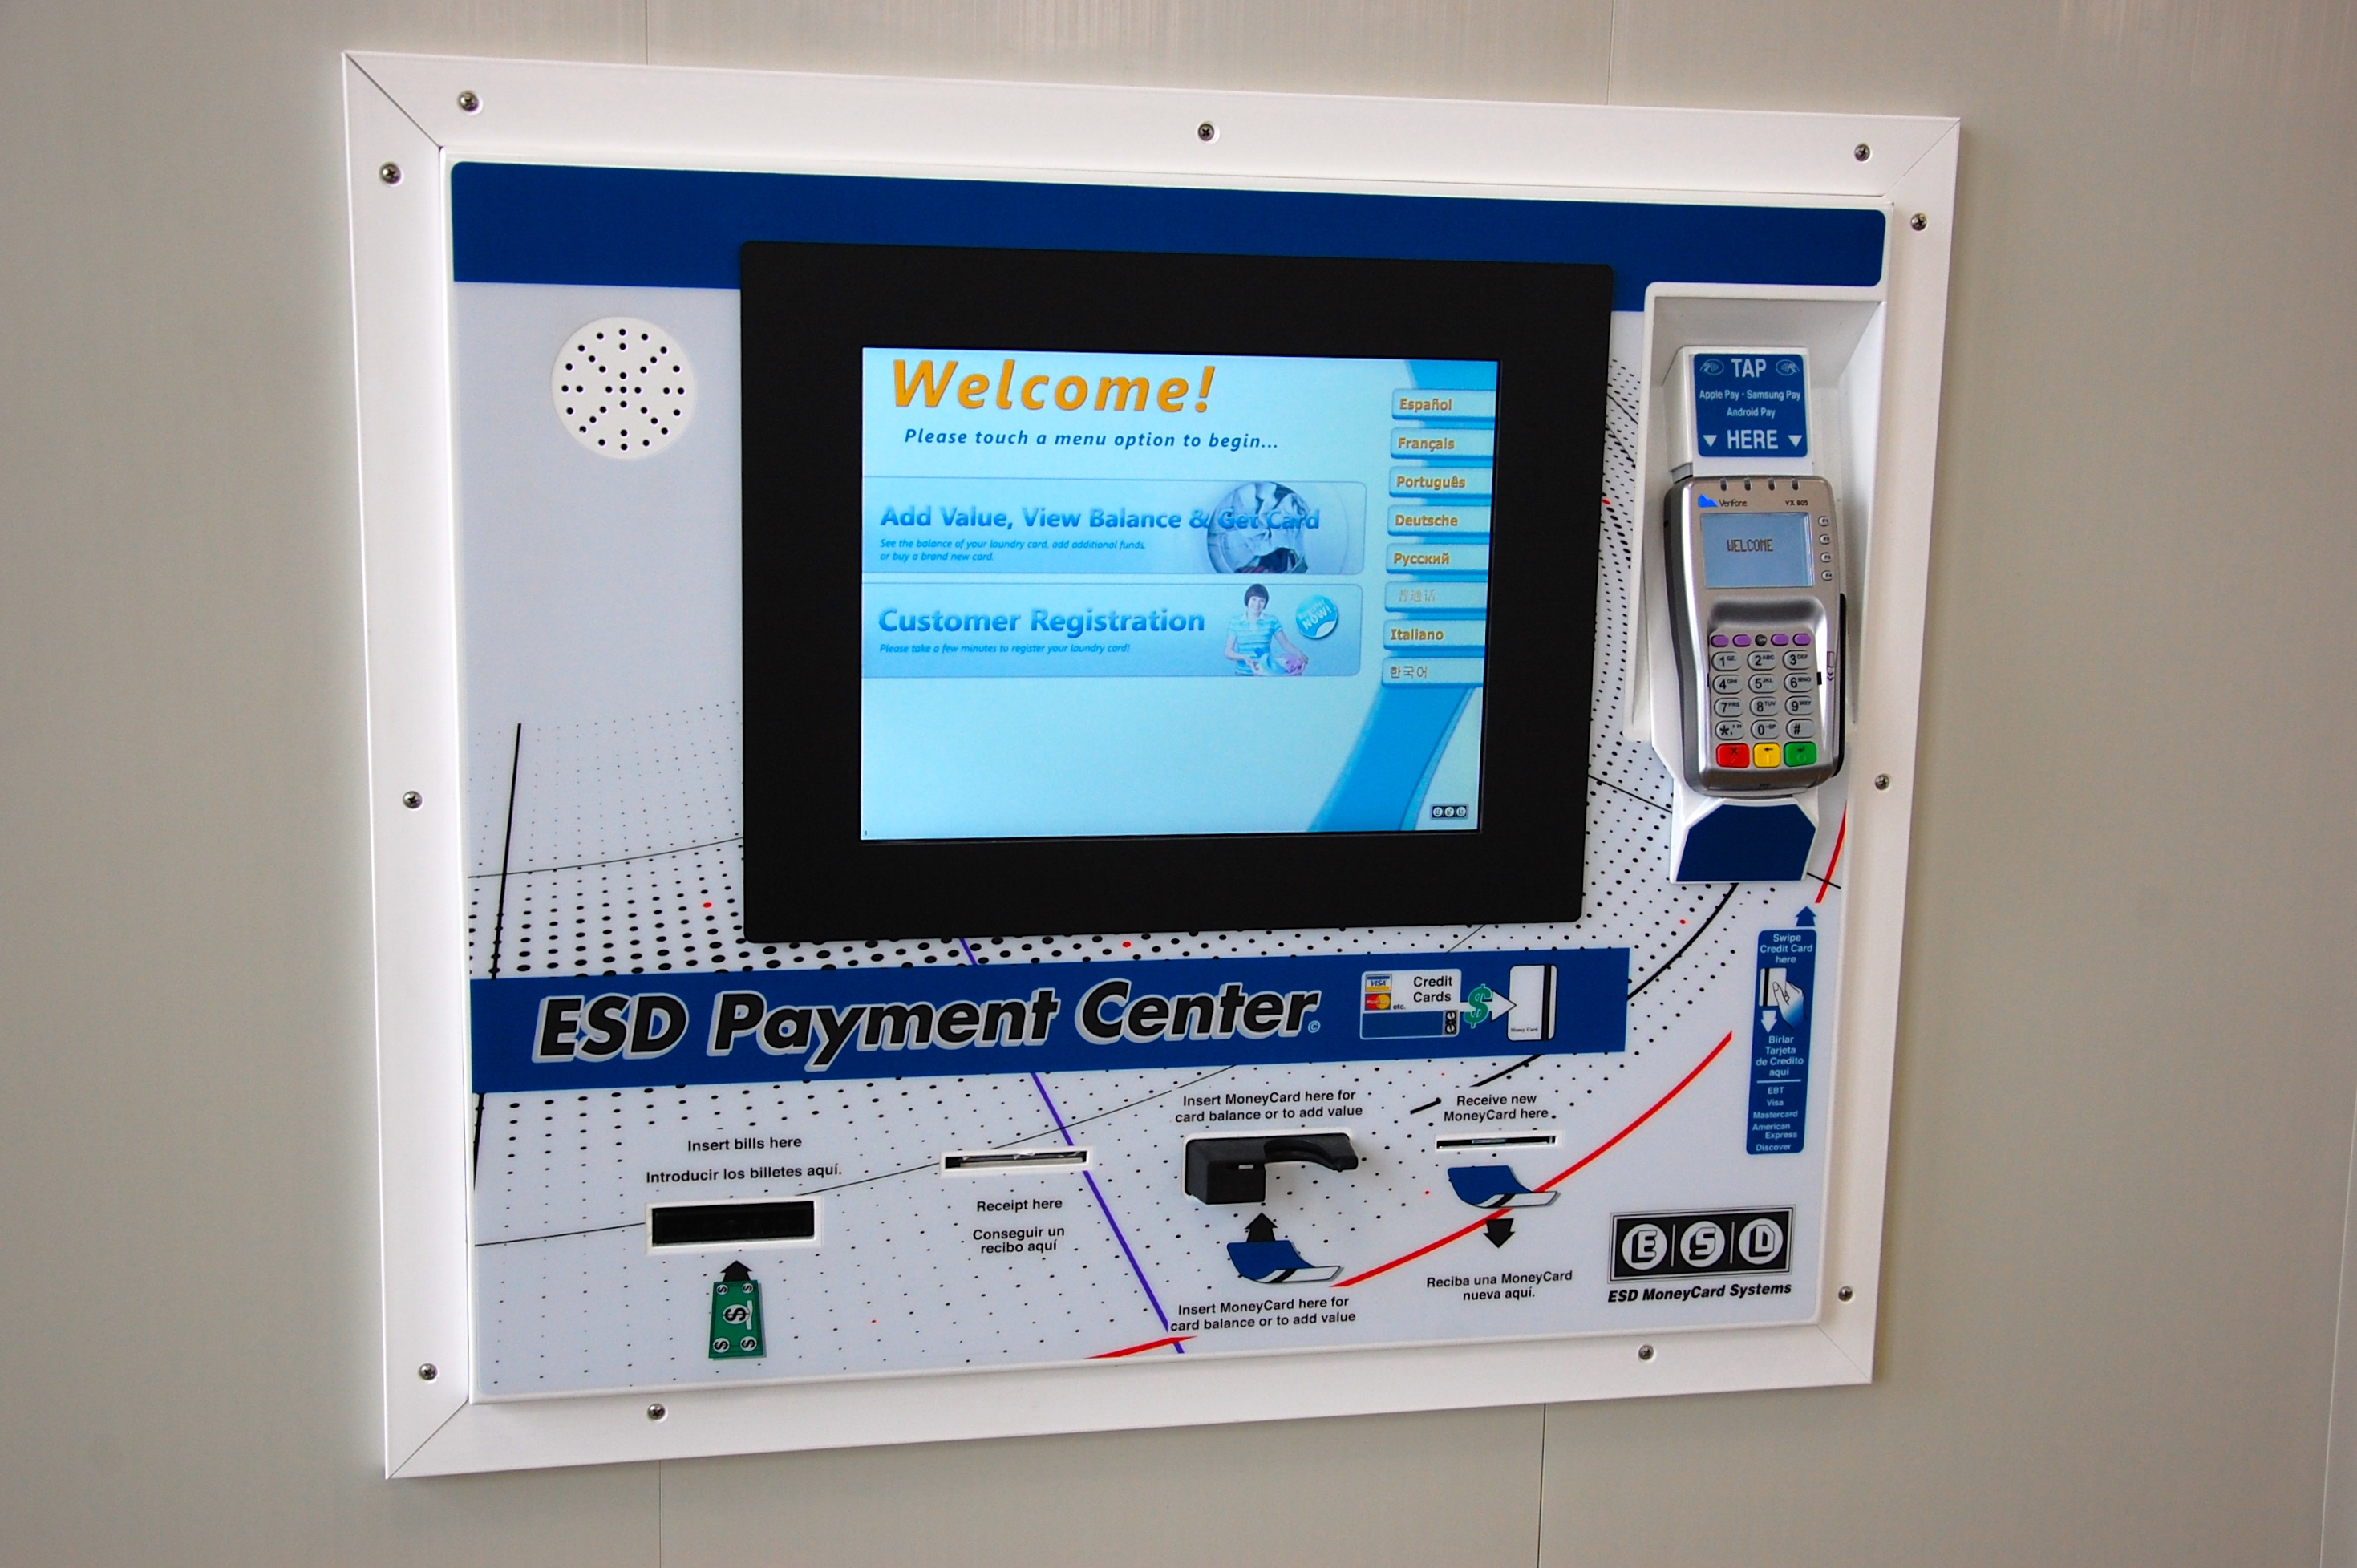 Laundromat uses the ESD Synergy Laundry Card system. Thumbnail